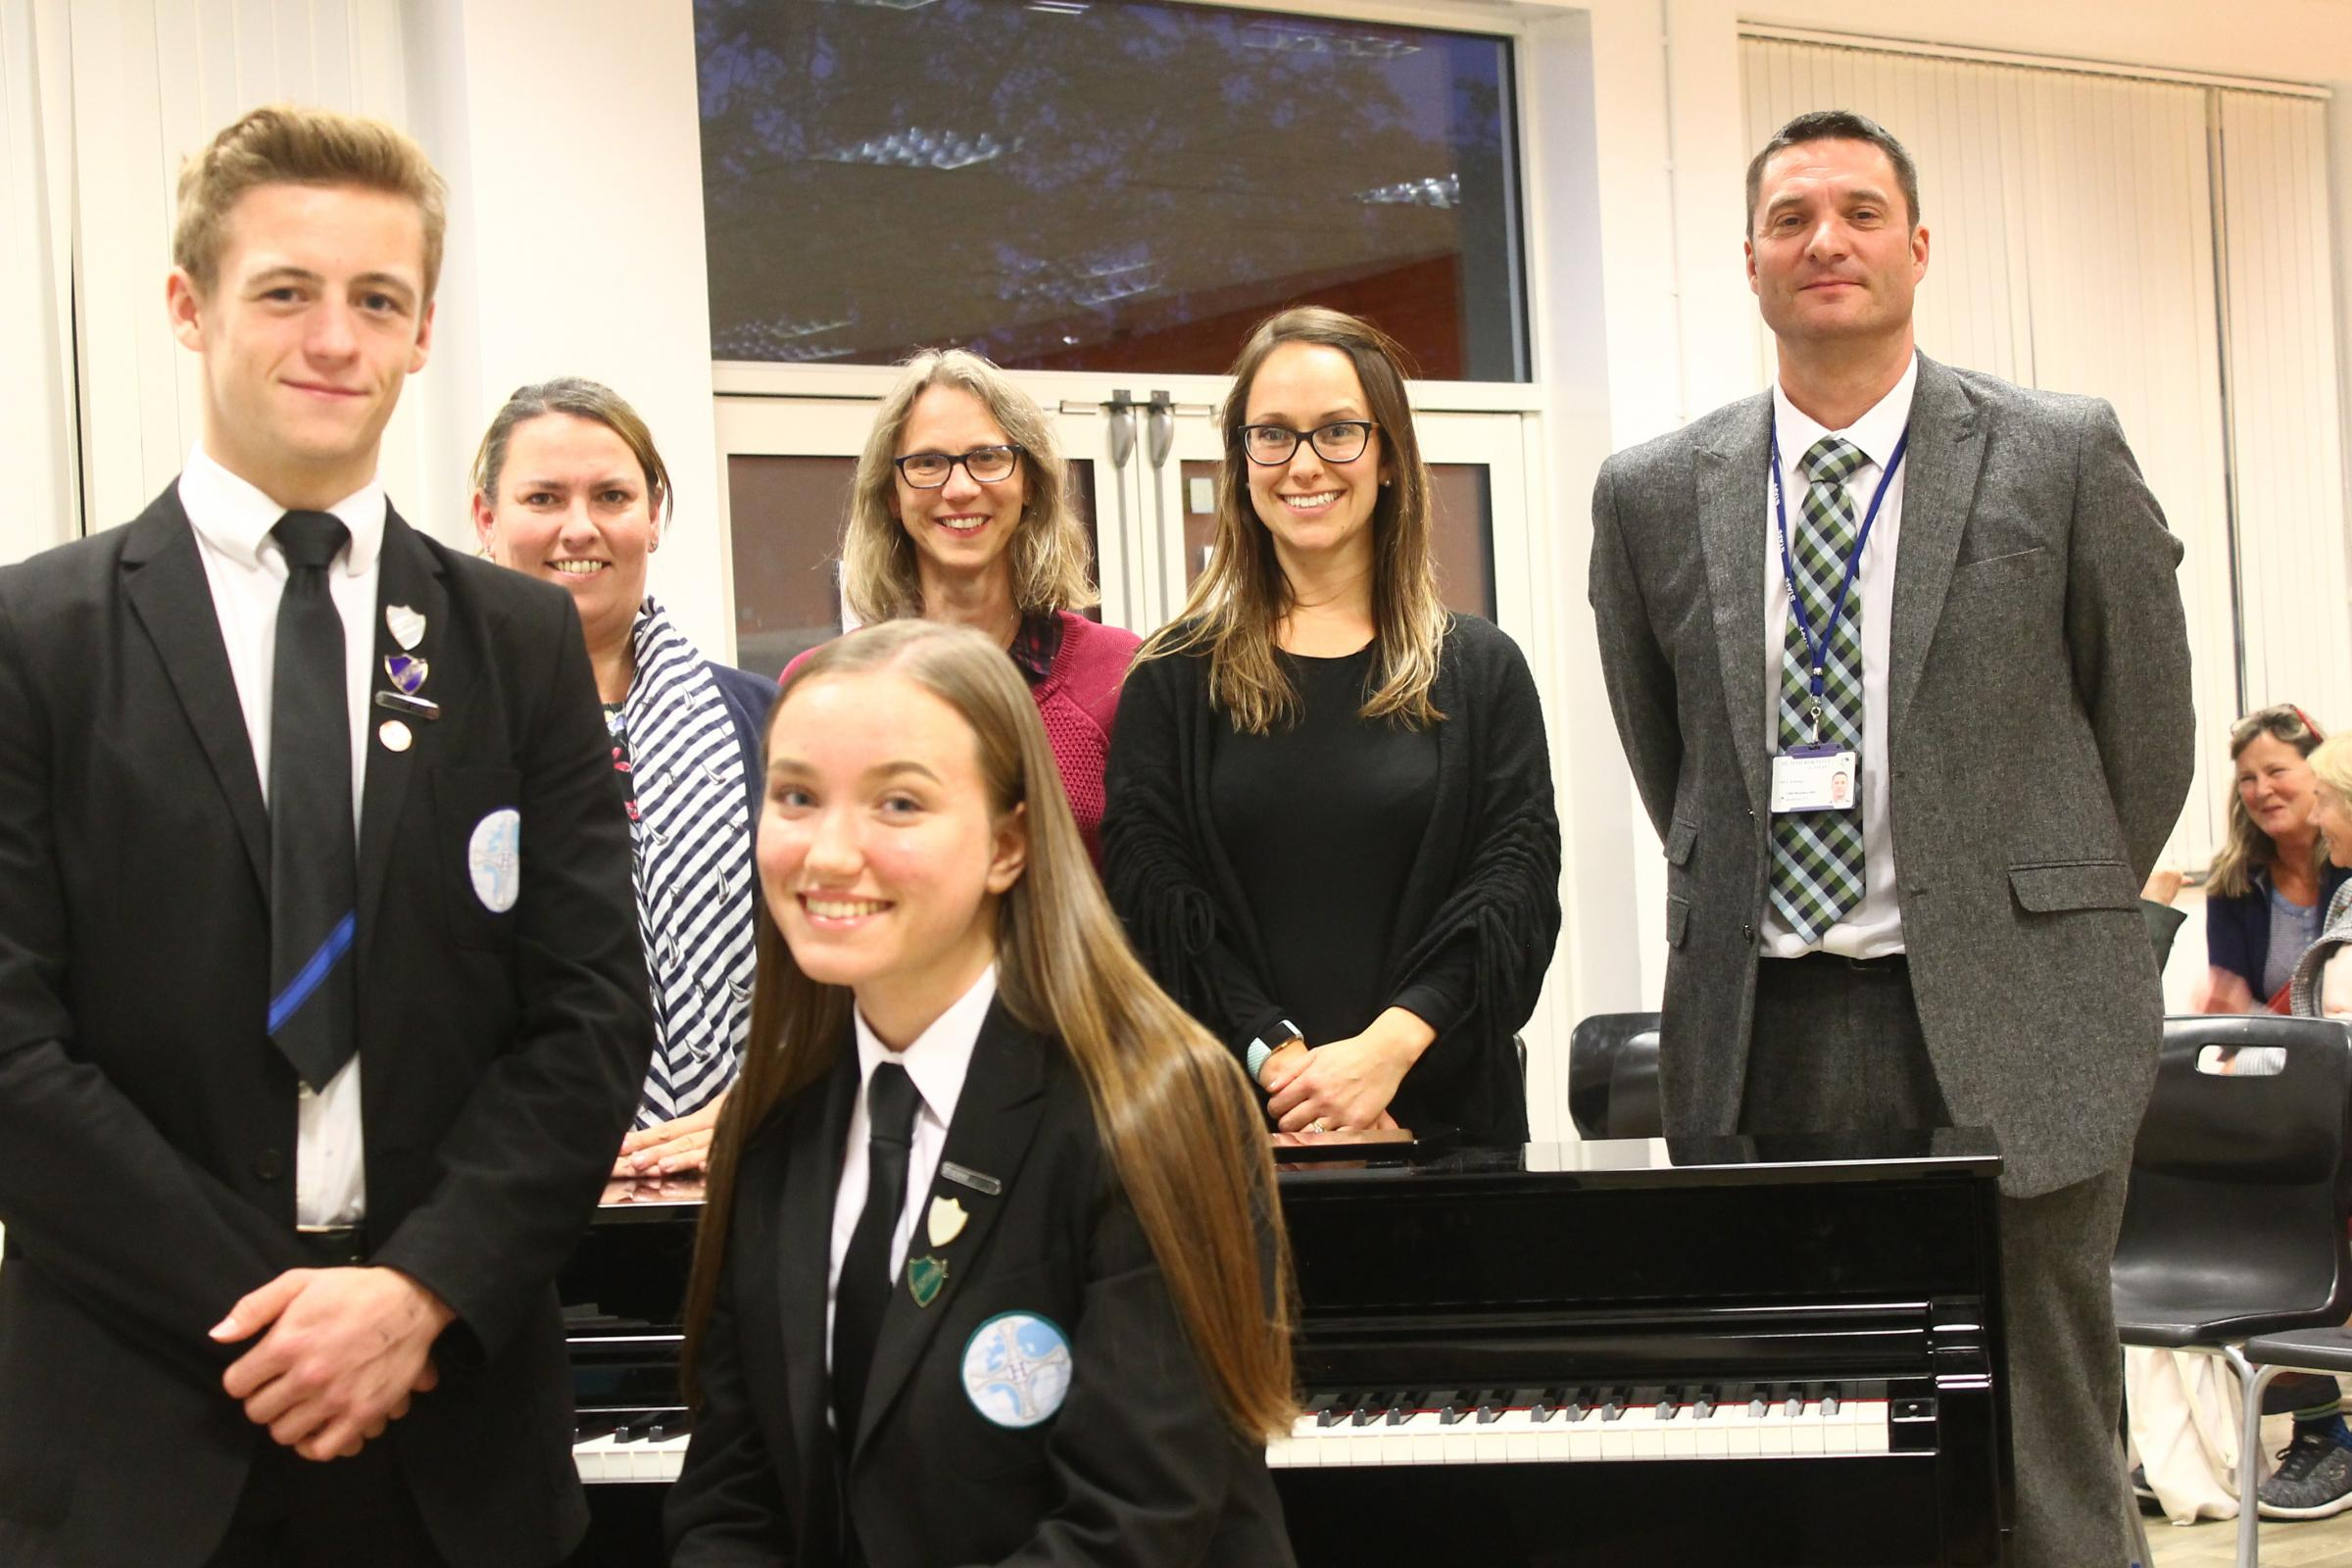 SUPPORT: Head girl and head boy, Hannah Crawford and Ryan Pepper, with (left to right) Liz Shevels, co-director of the Vocal Collective Community Choir; Gill Smith, secretary of the Parents' Forum; Katie Hibbard, co-director of the choir; and Hummmers